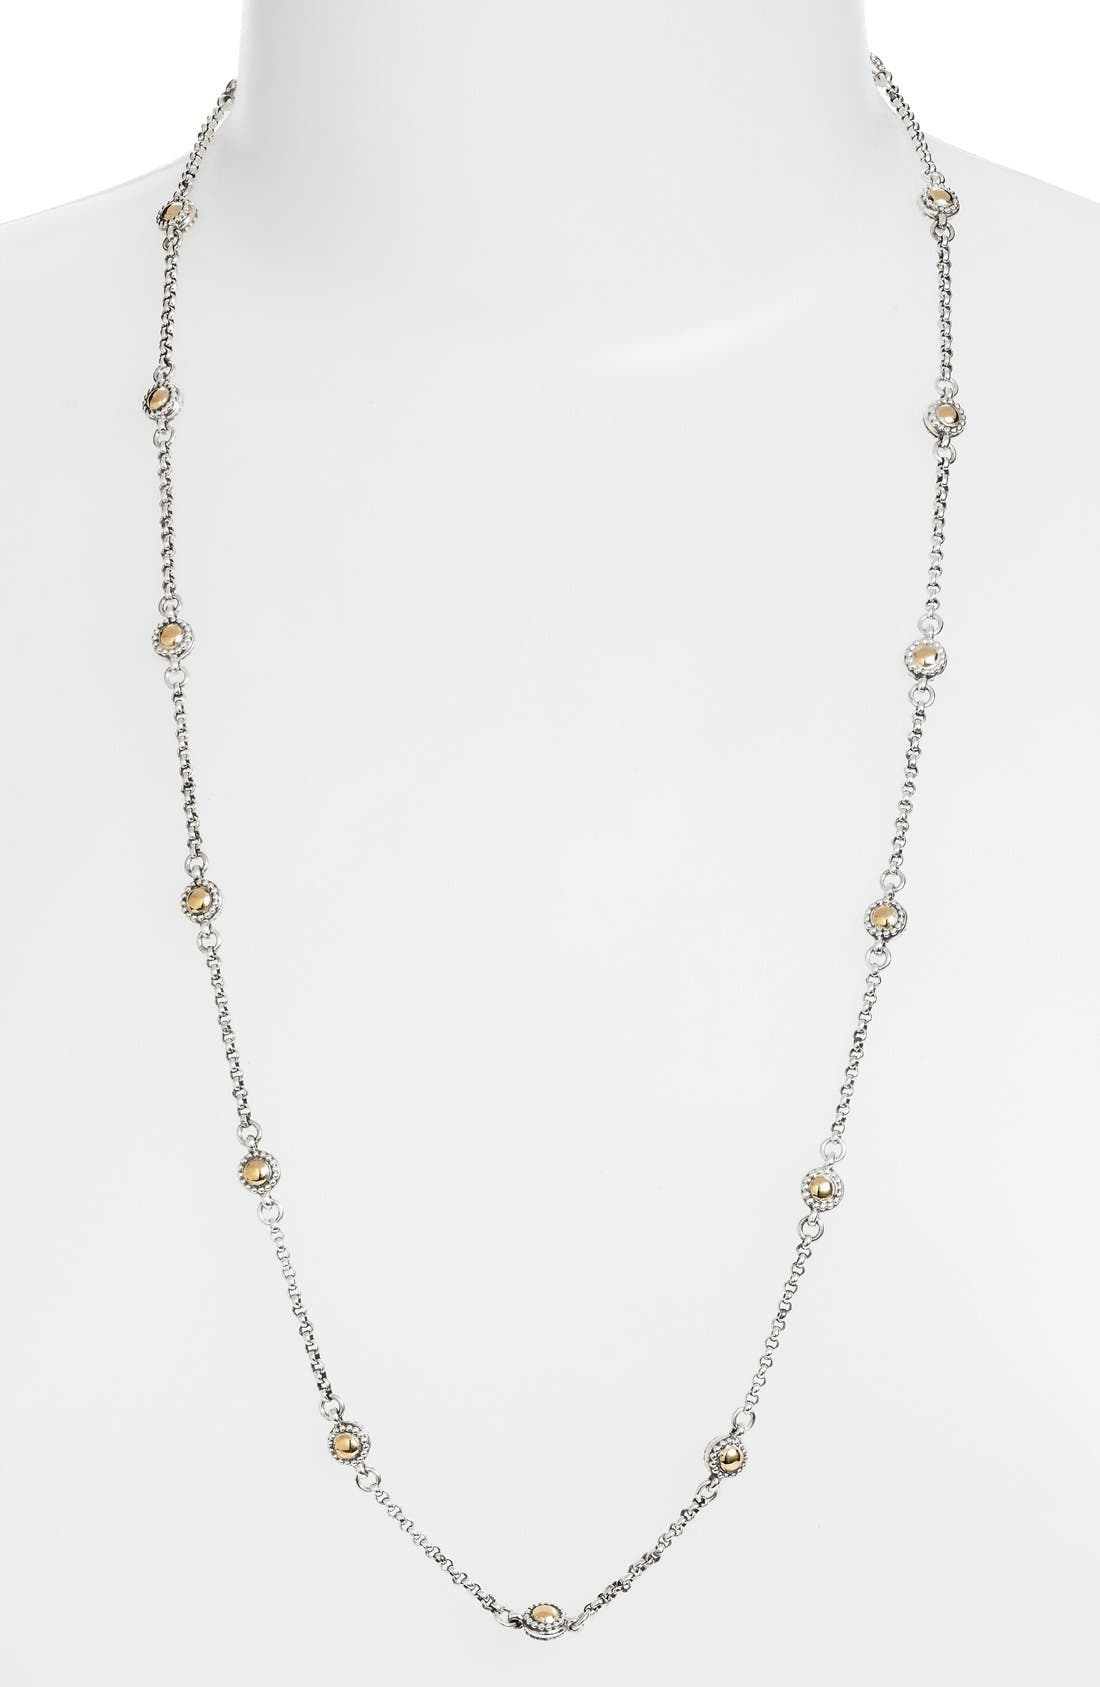 Station Necklace,                             Main thumbnail 1, color,                             SILVER/ GOLD